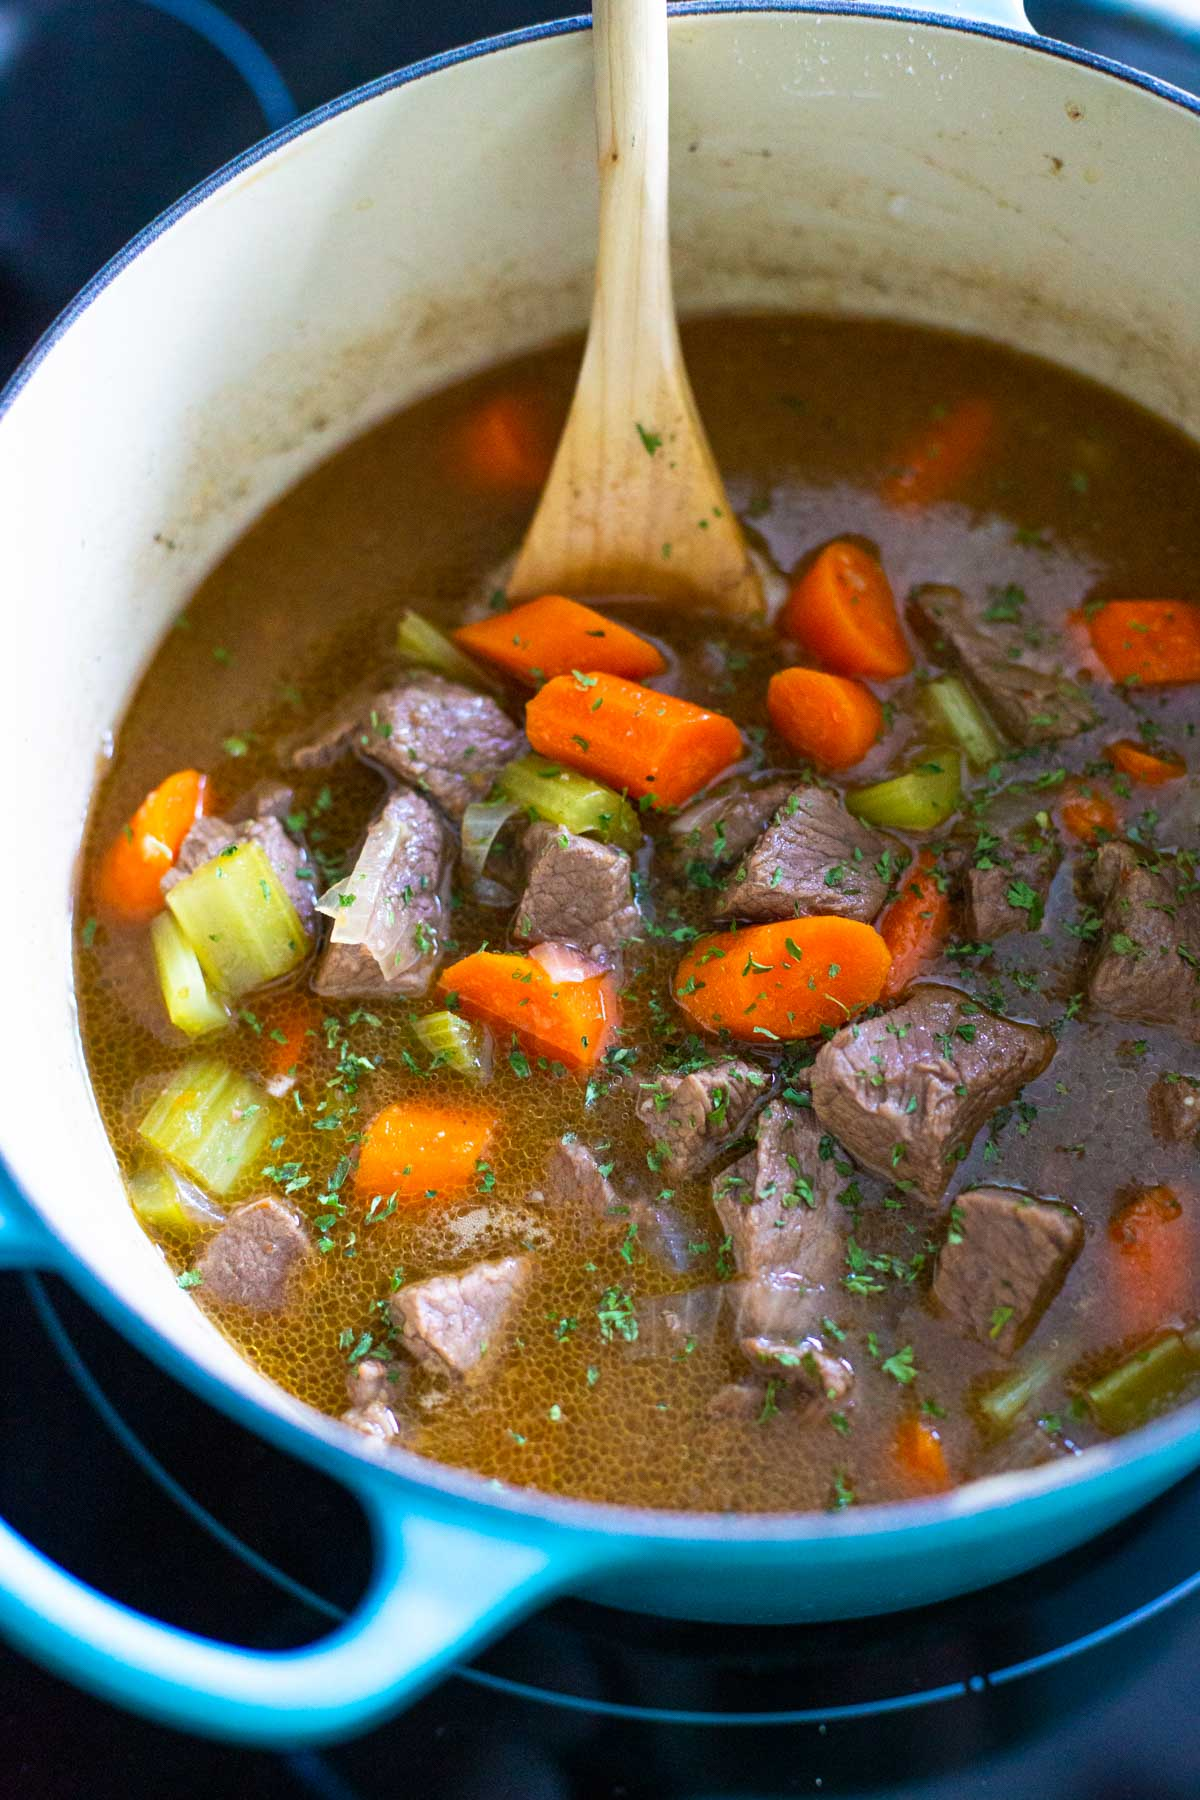 The finished beef stew sits in a dutch oven on the stove top.